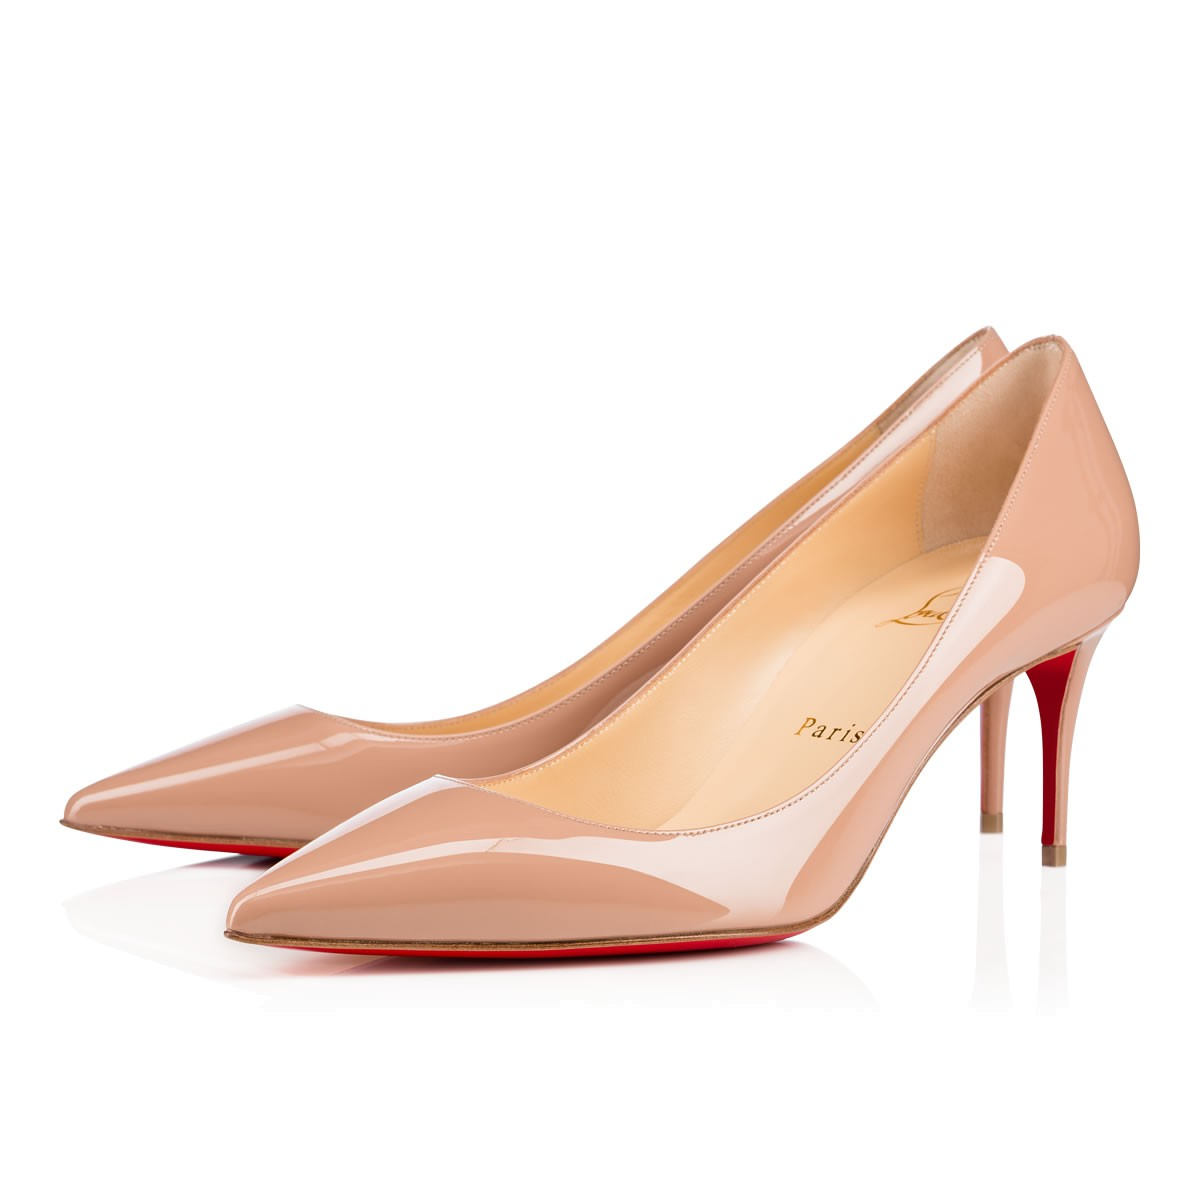 6dc215eb20de Decollete 554 70 Nude Patent Leather - Women Shoes - Christian ...